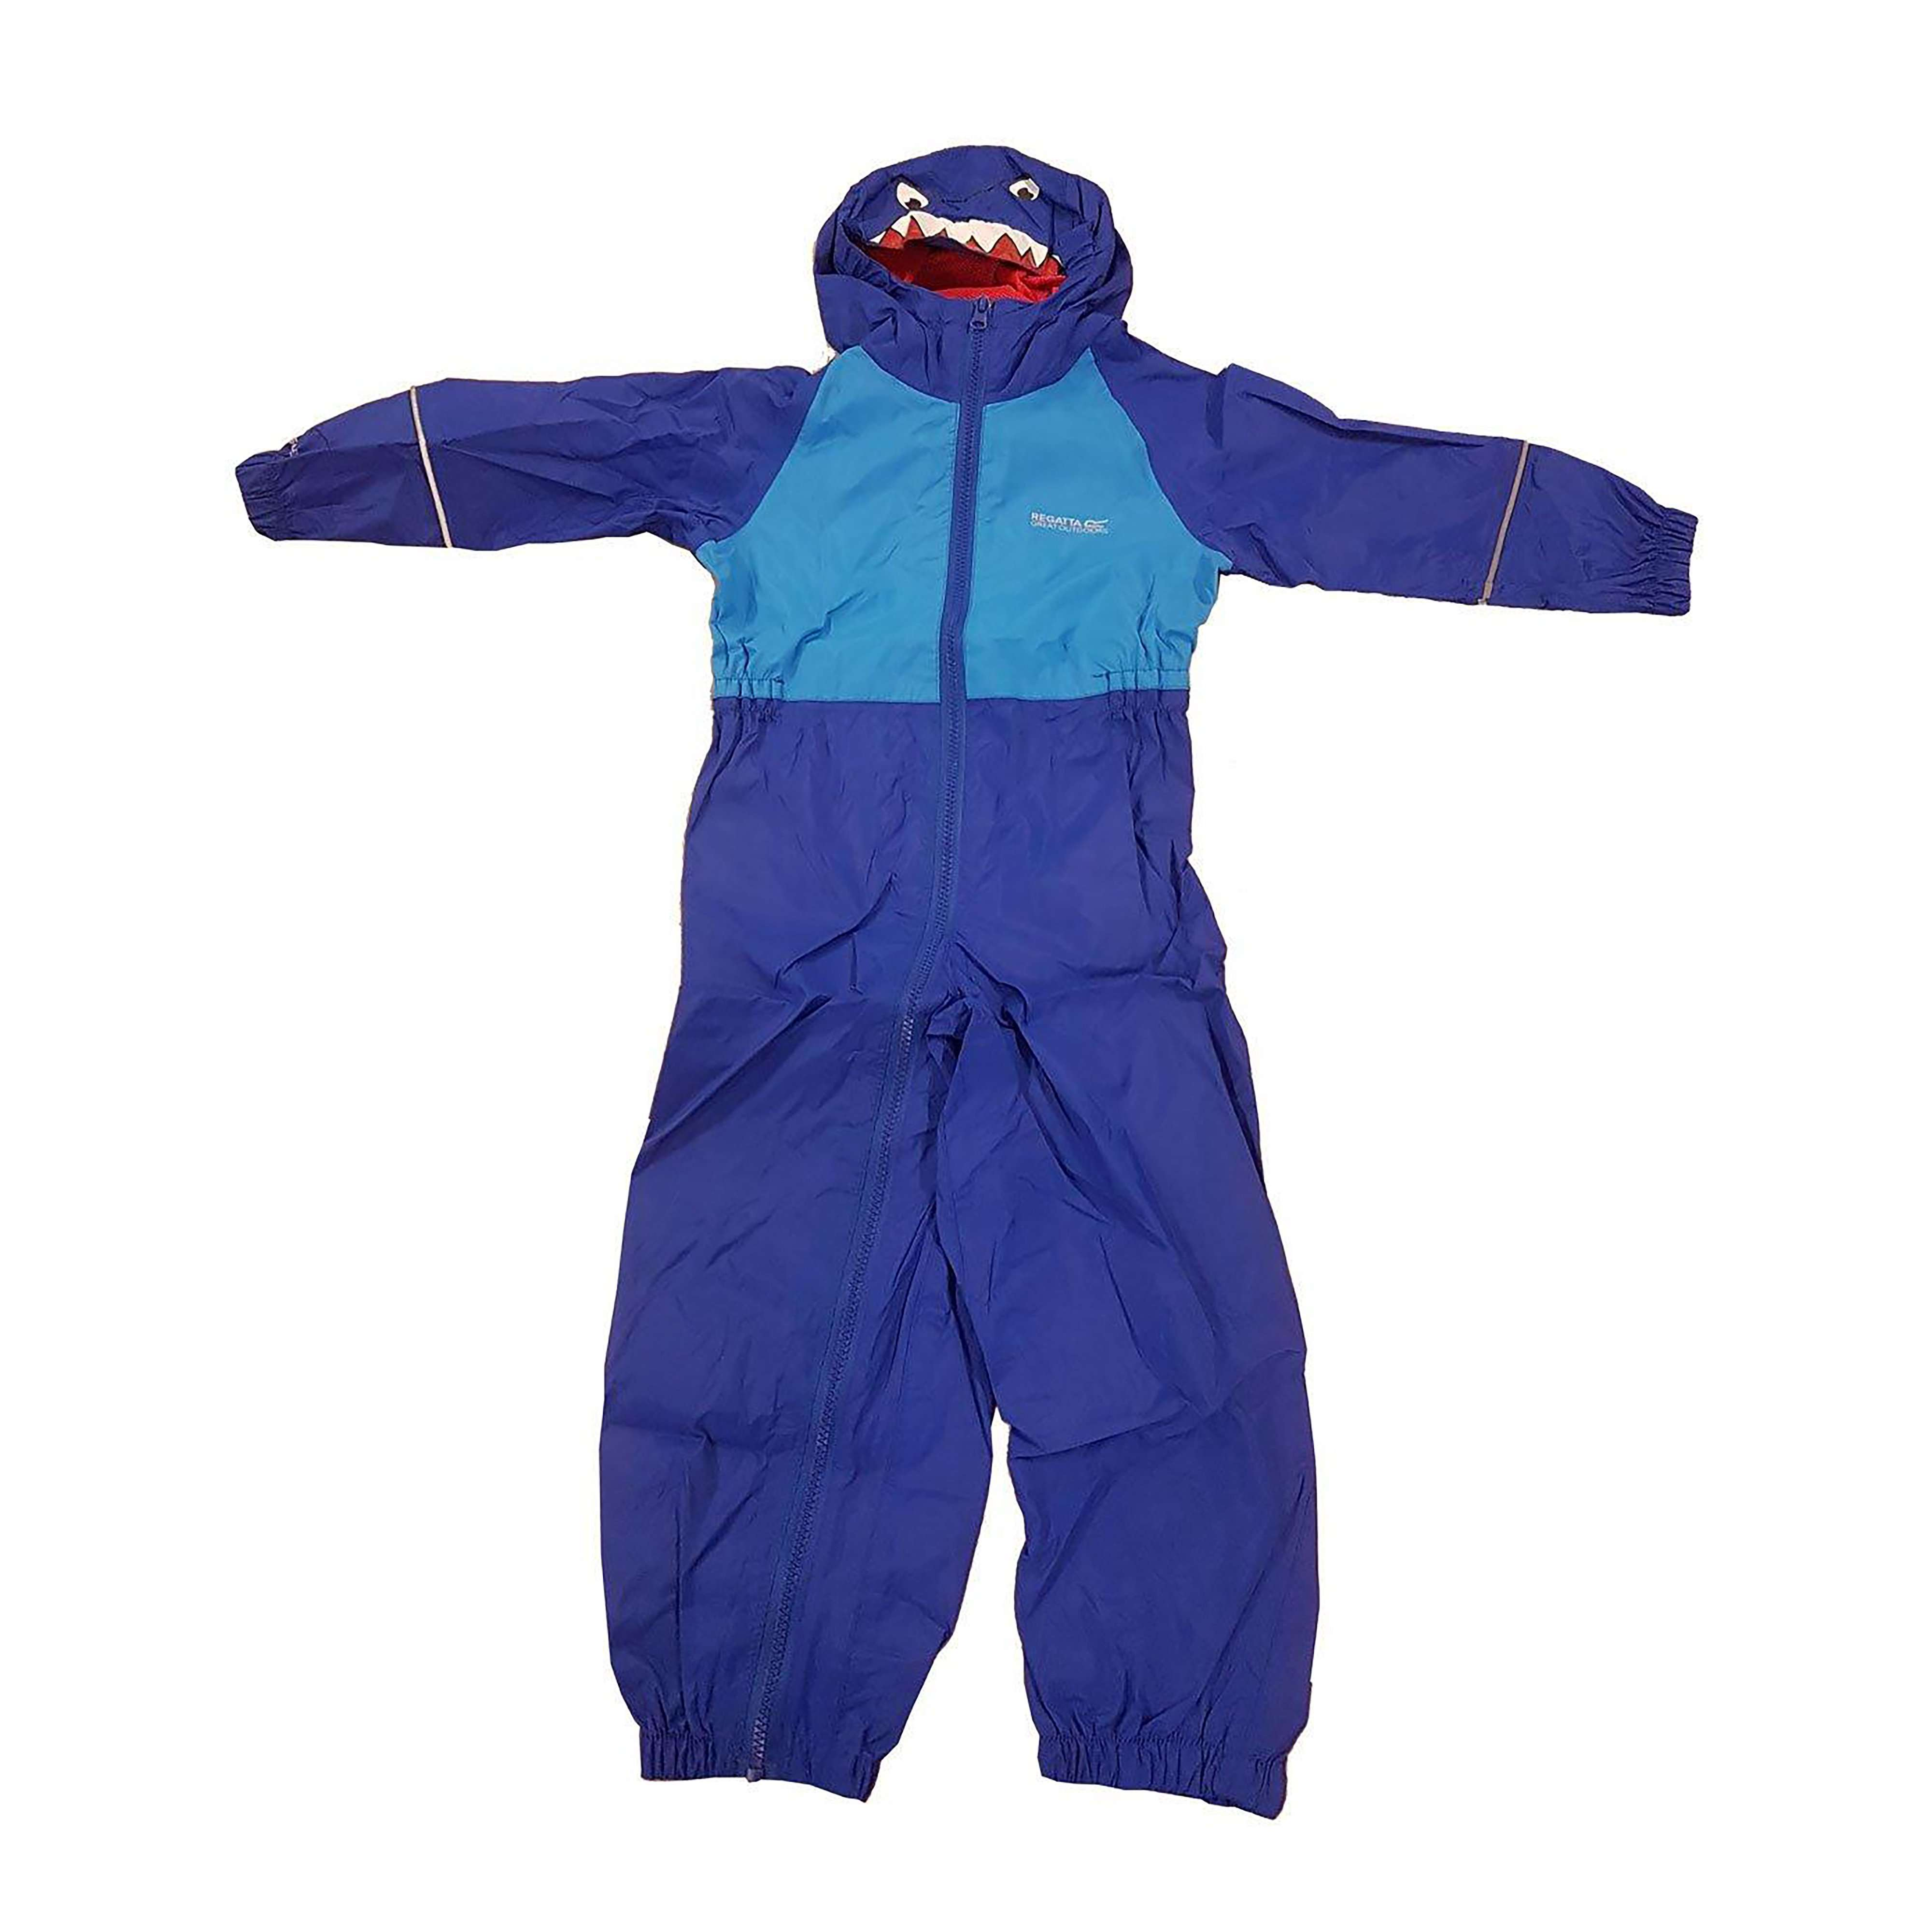 REGATTA Kids' Charco Shark All-In-One Suit